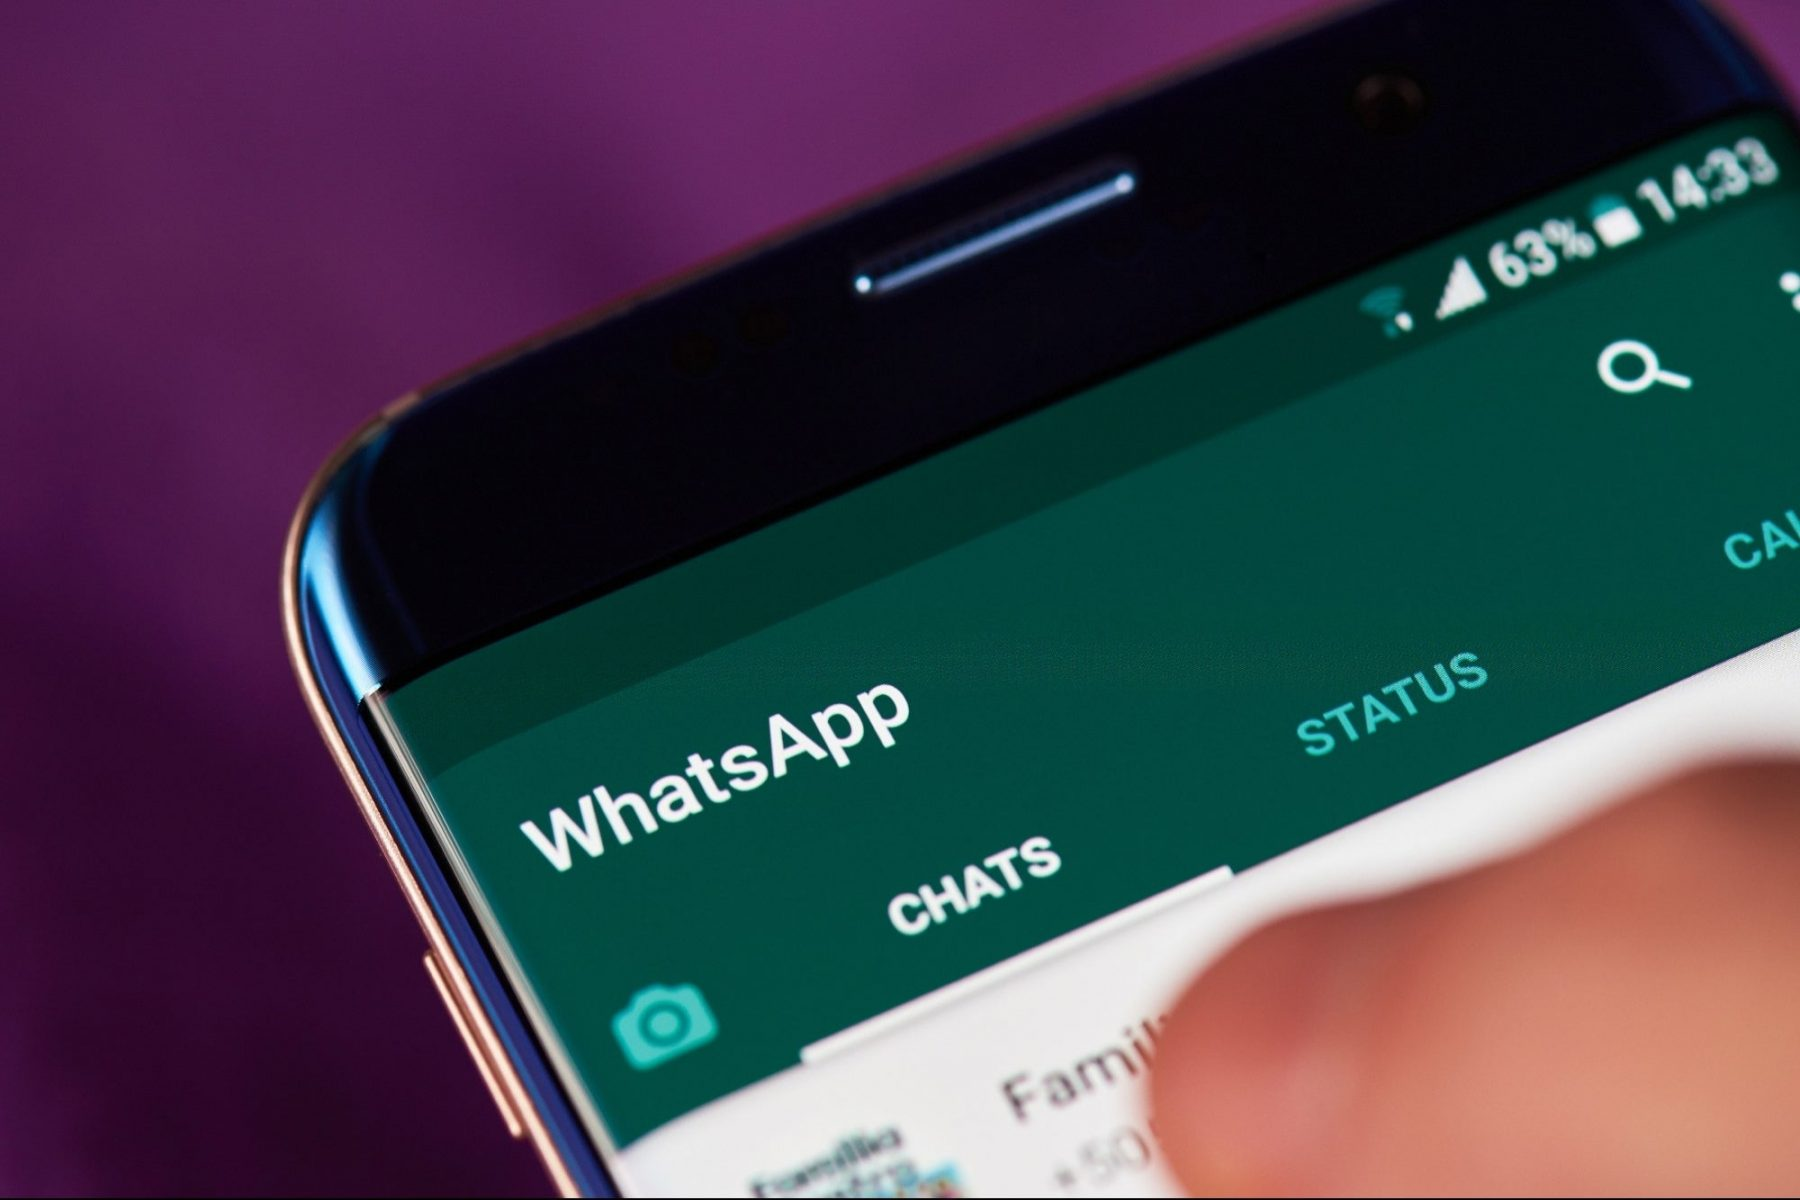 whatsapp-will-no-longer-work-on-these-ios-and-android-smartphones-since-november,-is-yours-on-the-list?